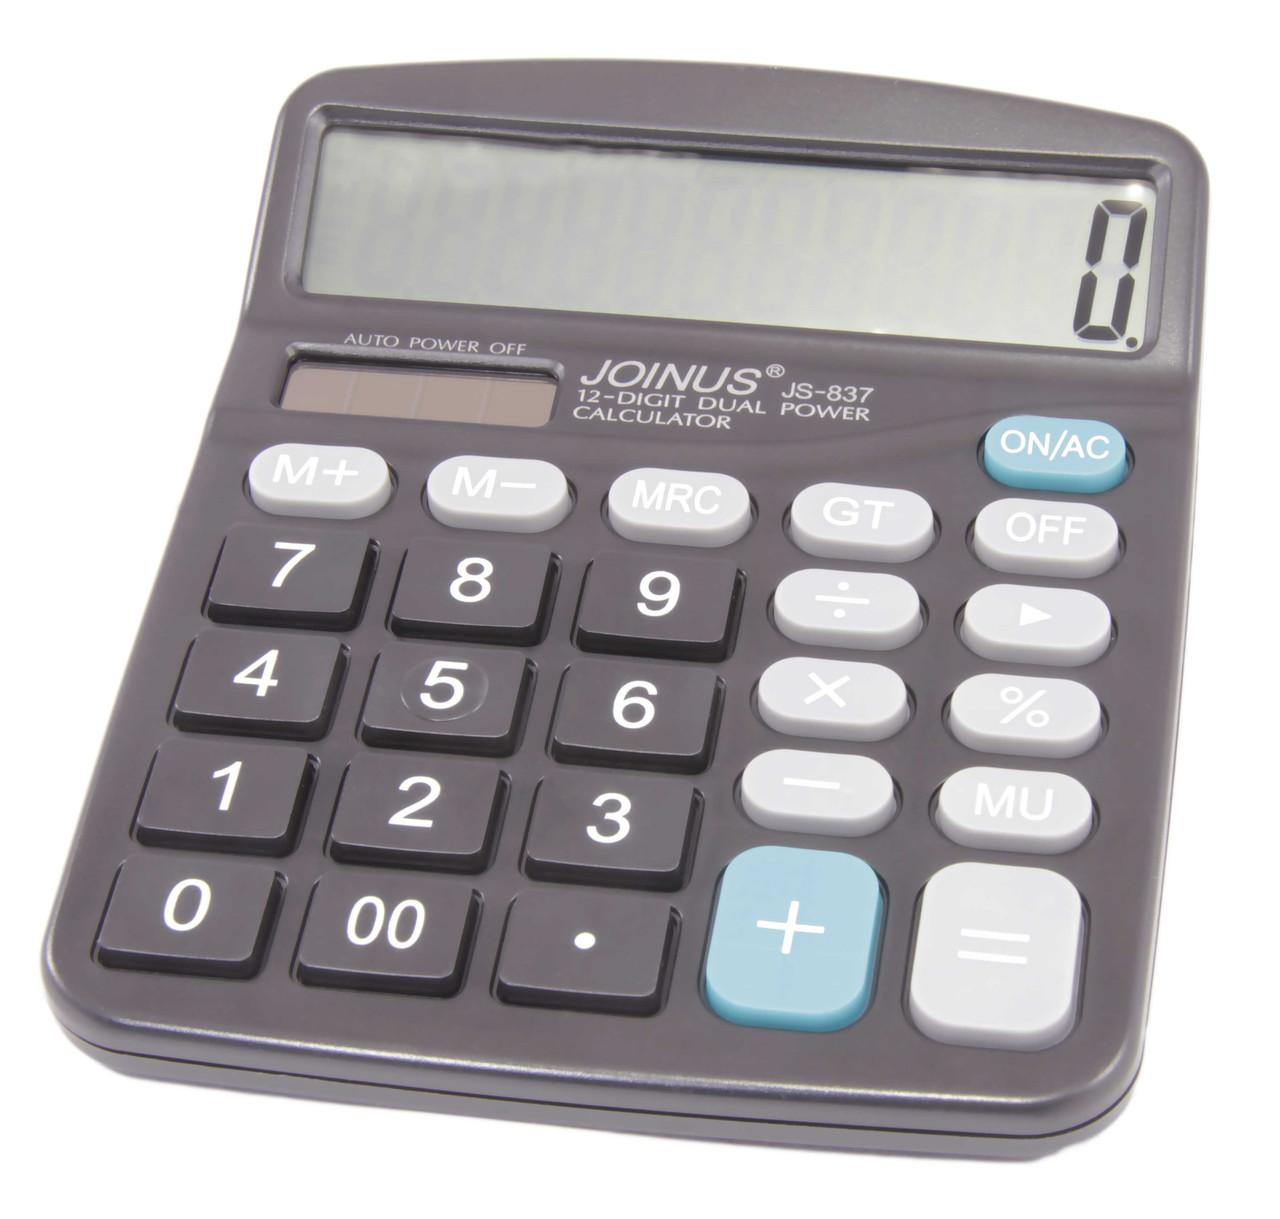 Dual Power 12 Digit Big Display Desktop Calculator JS-837 Solar/Battery  Powered  Home Office School Large Display